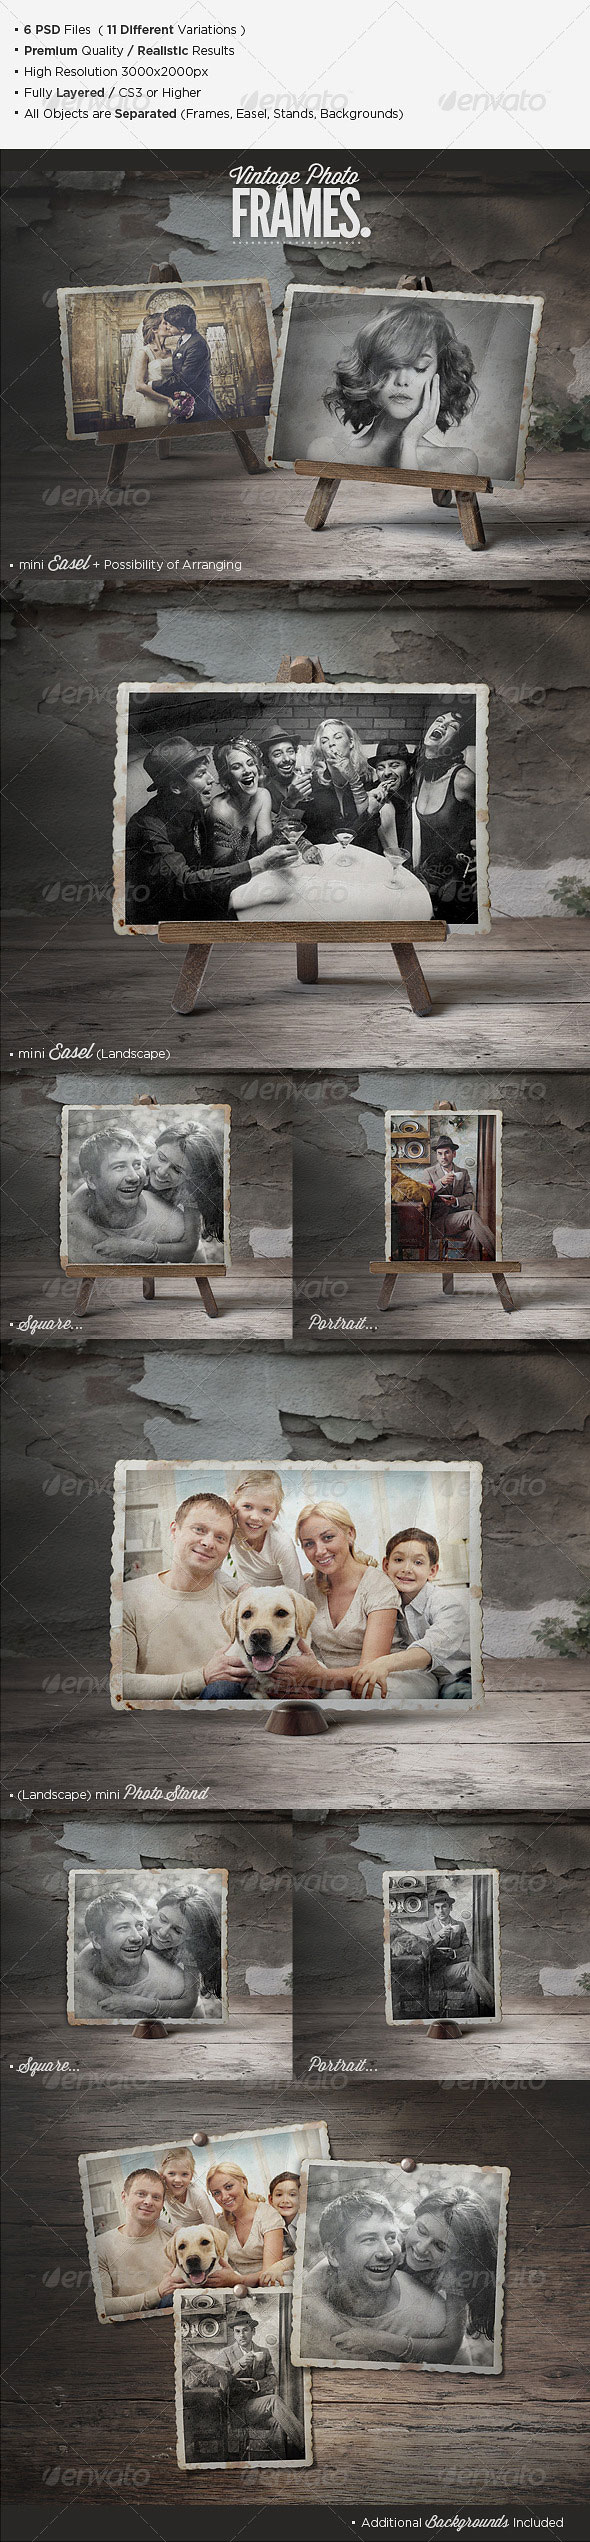 Graphicriver - 5683010 Premium Vintage Photo Frames